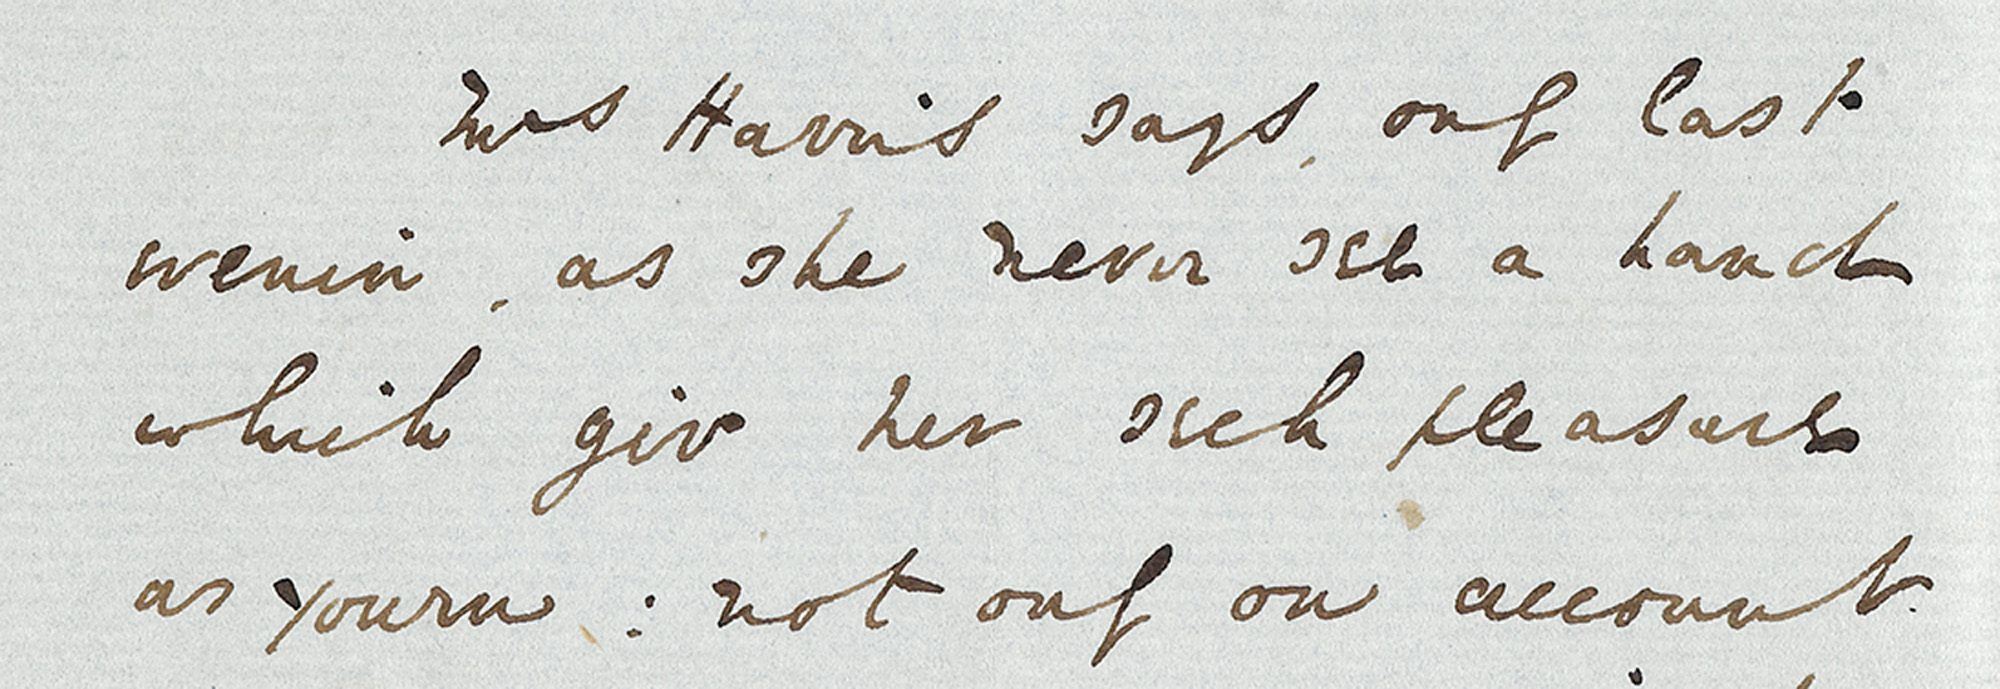 An extract from a letter sent by Charles Dickens to Marion Ely